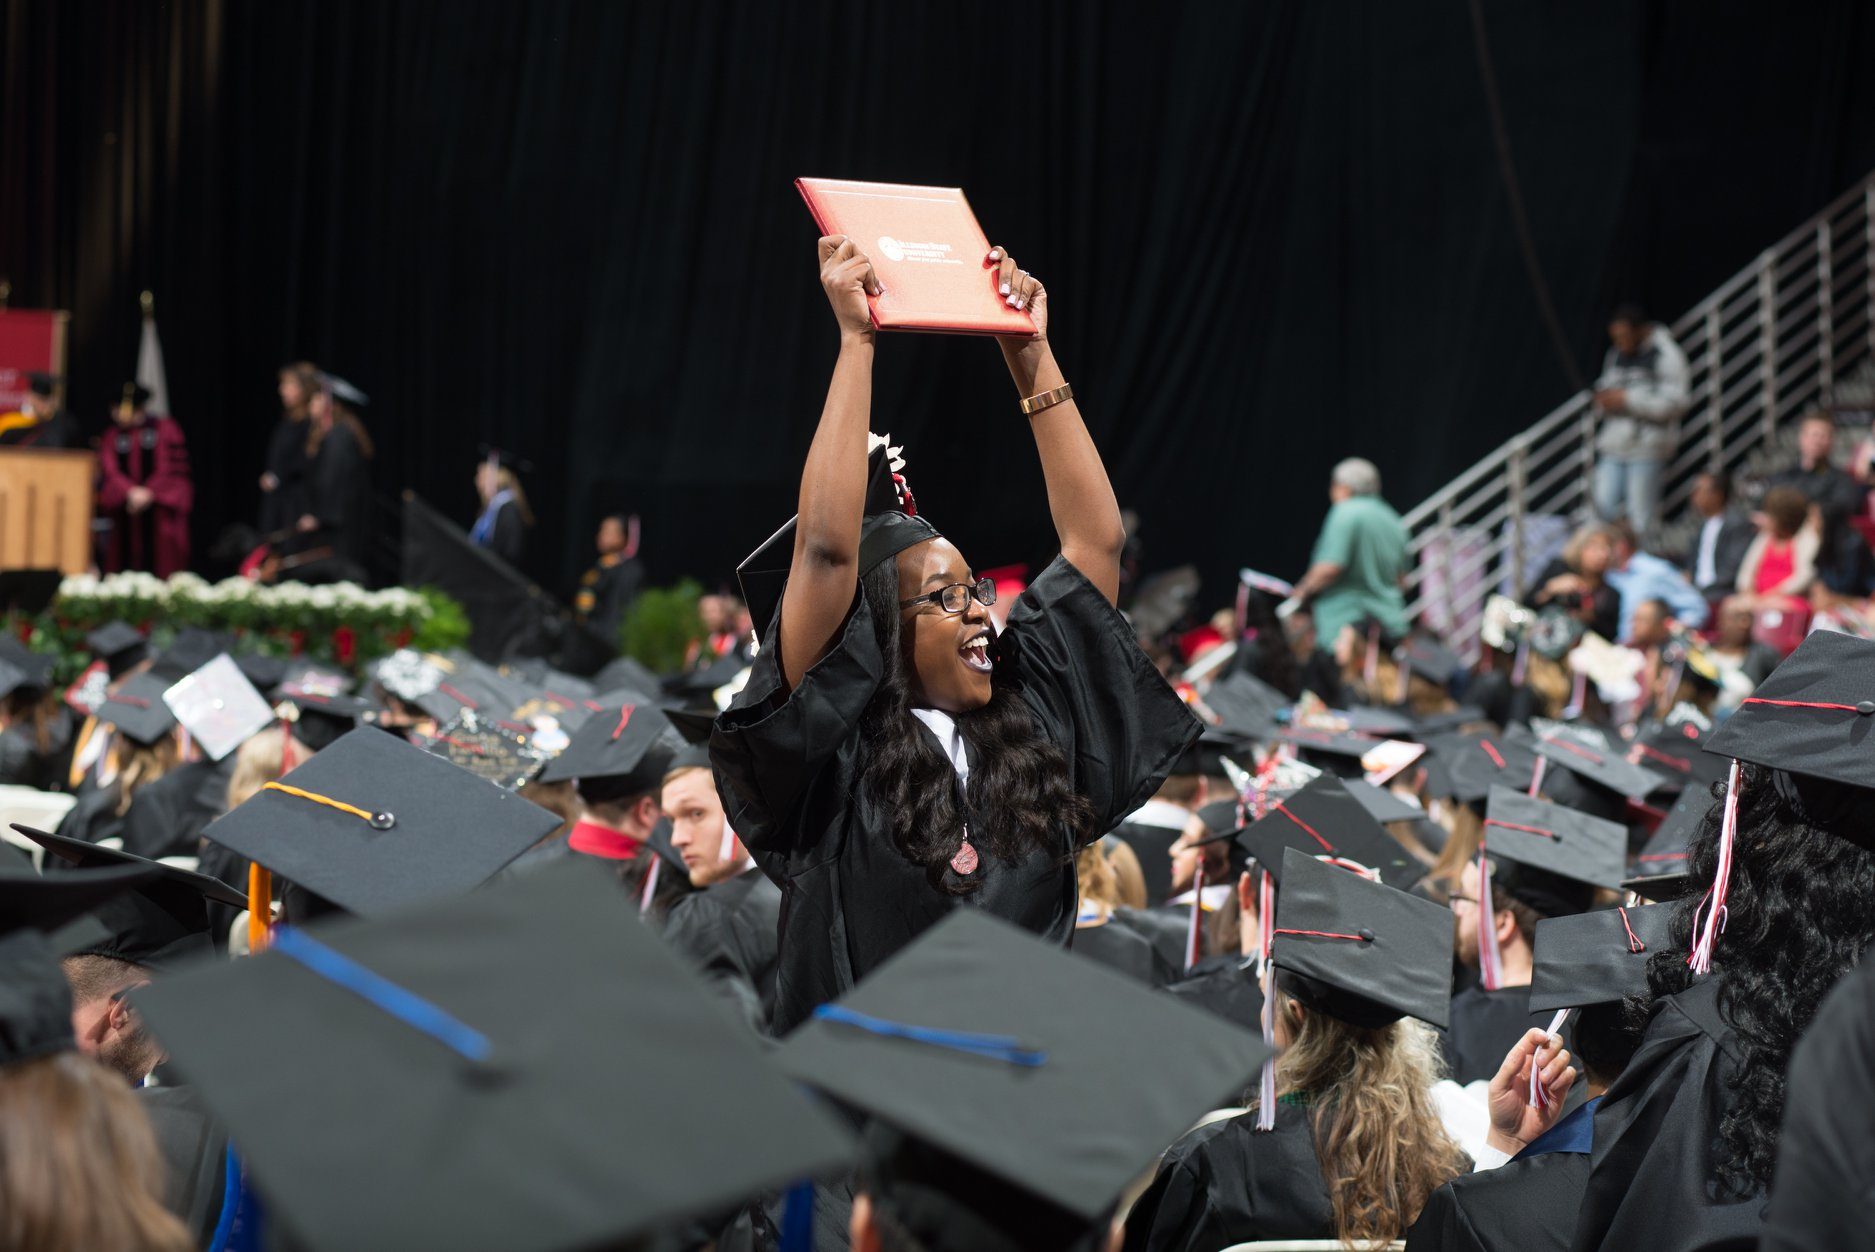 Student celebrates with diploma.